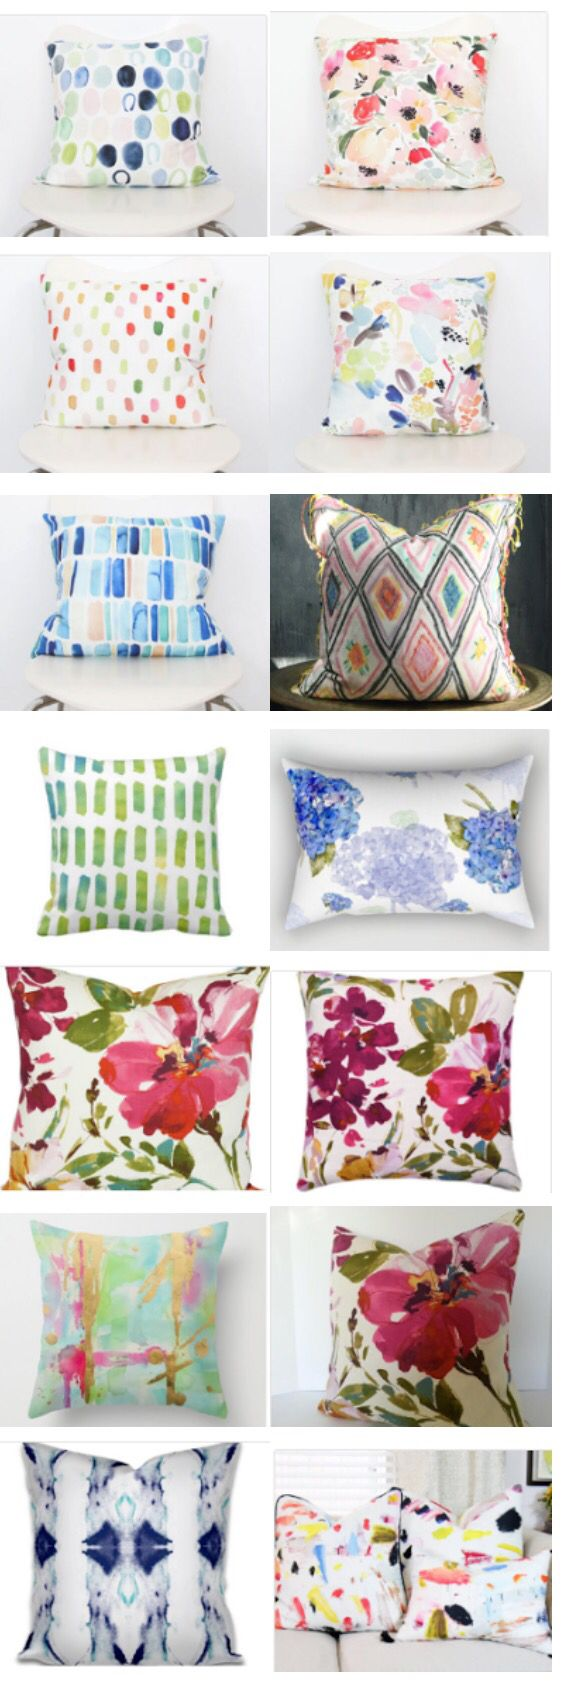 Watercolor hand painted pillows. An etsy favorite find | Costura ...